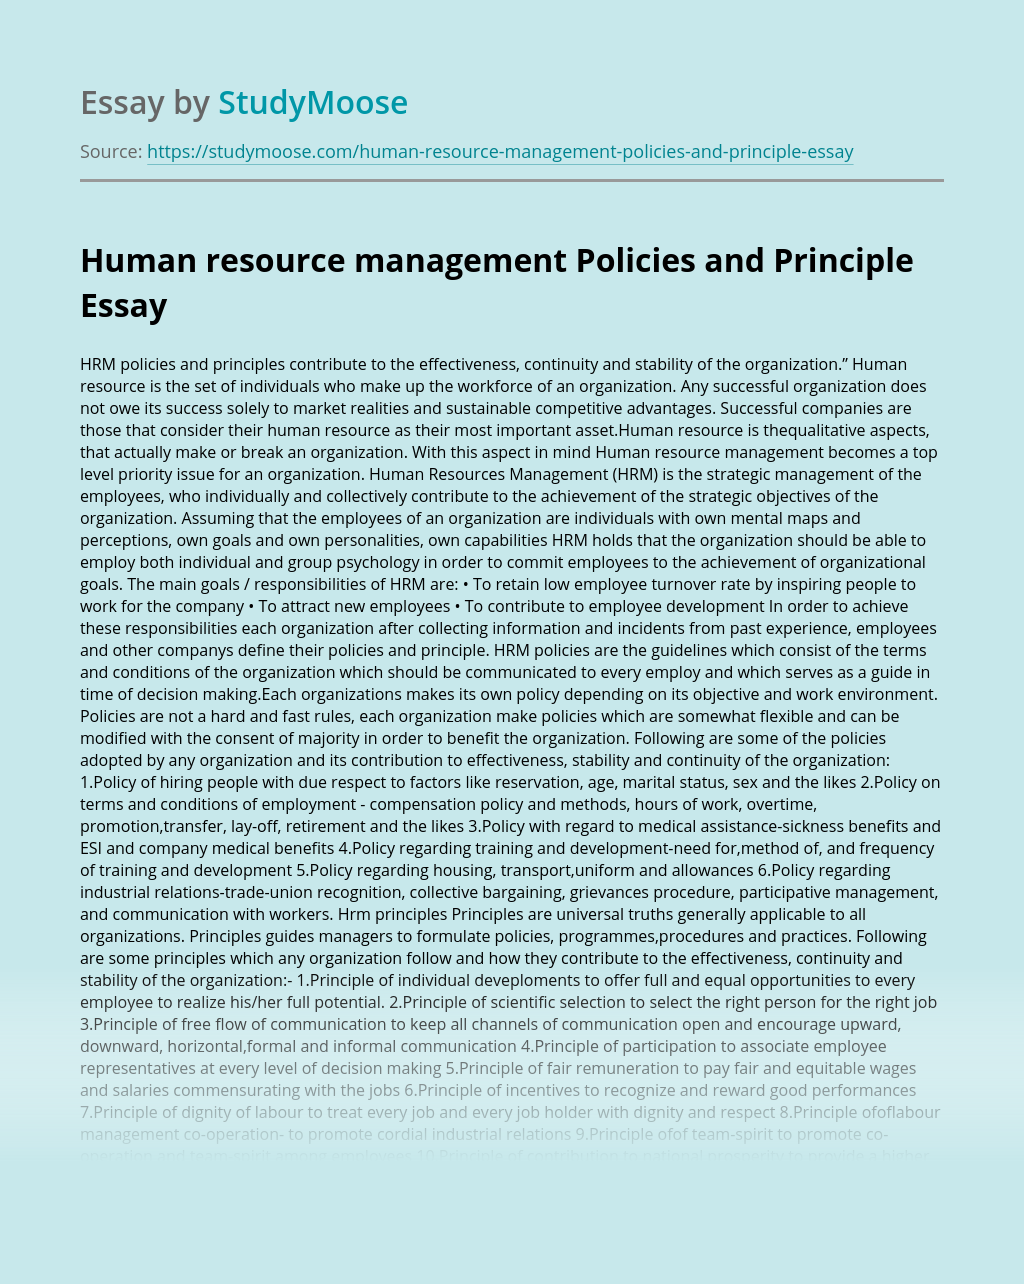 Human resource management Policies and Principle